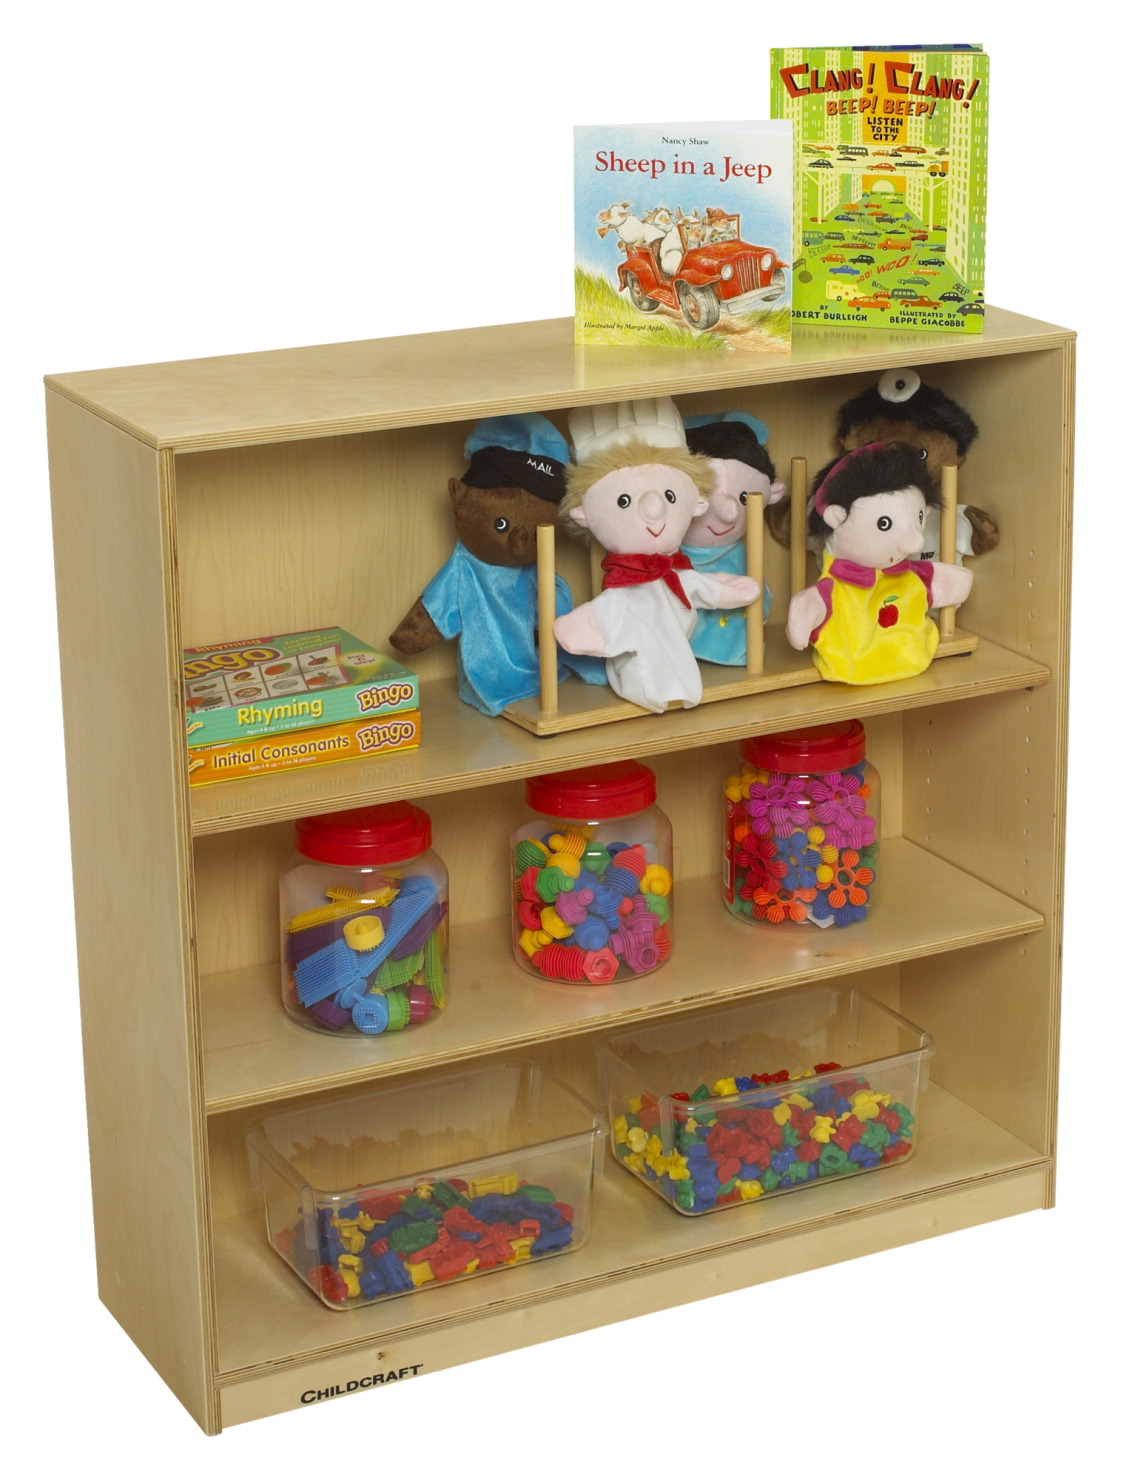 Childcraft Adjustable Bookshelf 3 Shelves 35 4 X 11 5 8 36 Inches